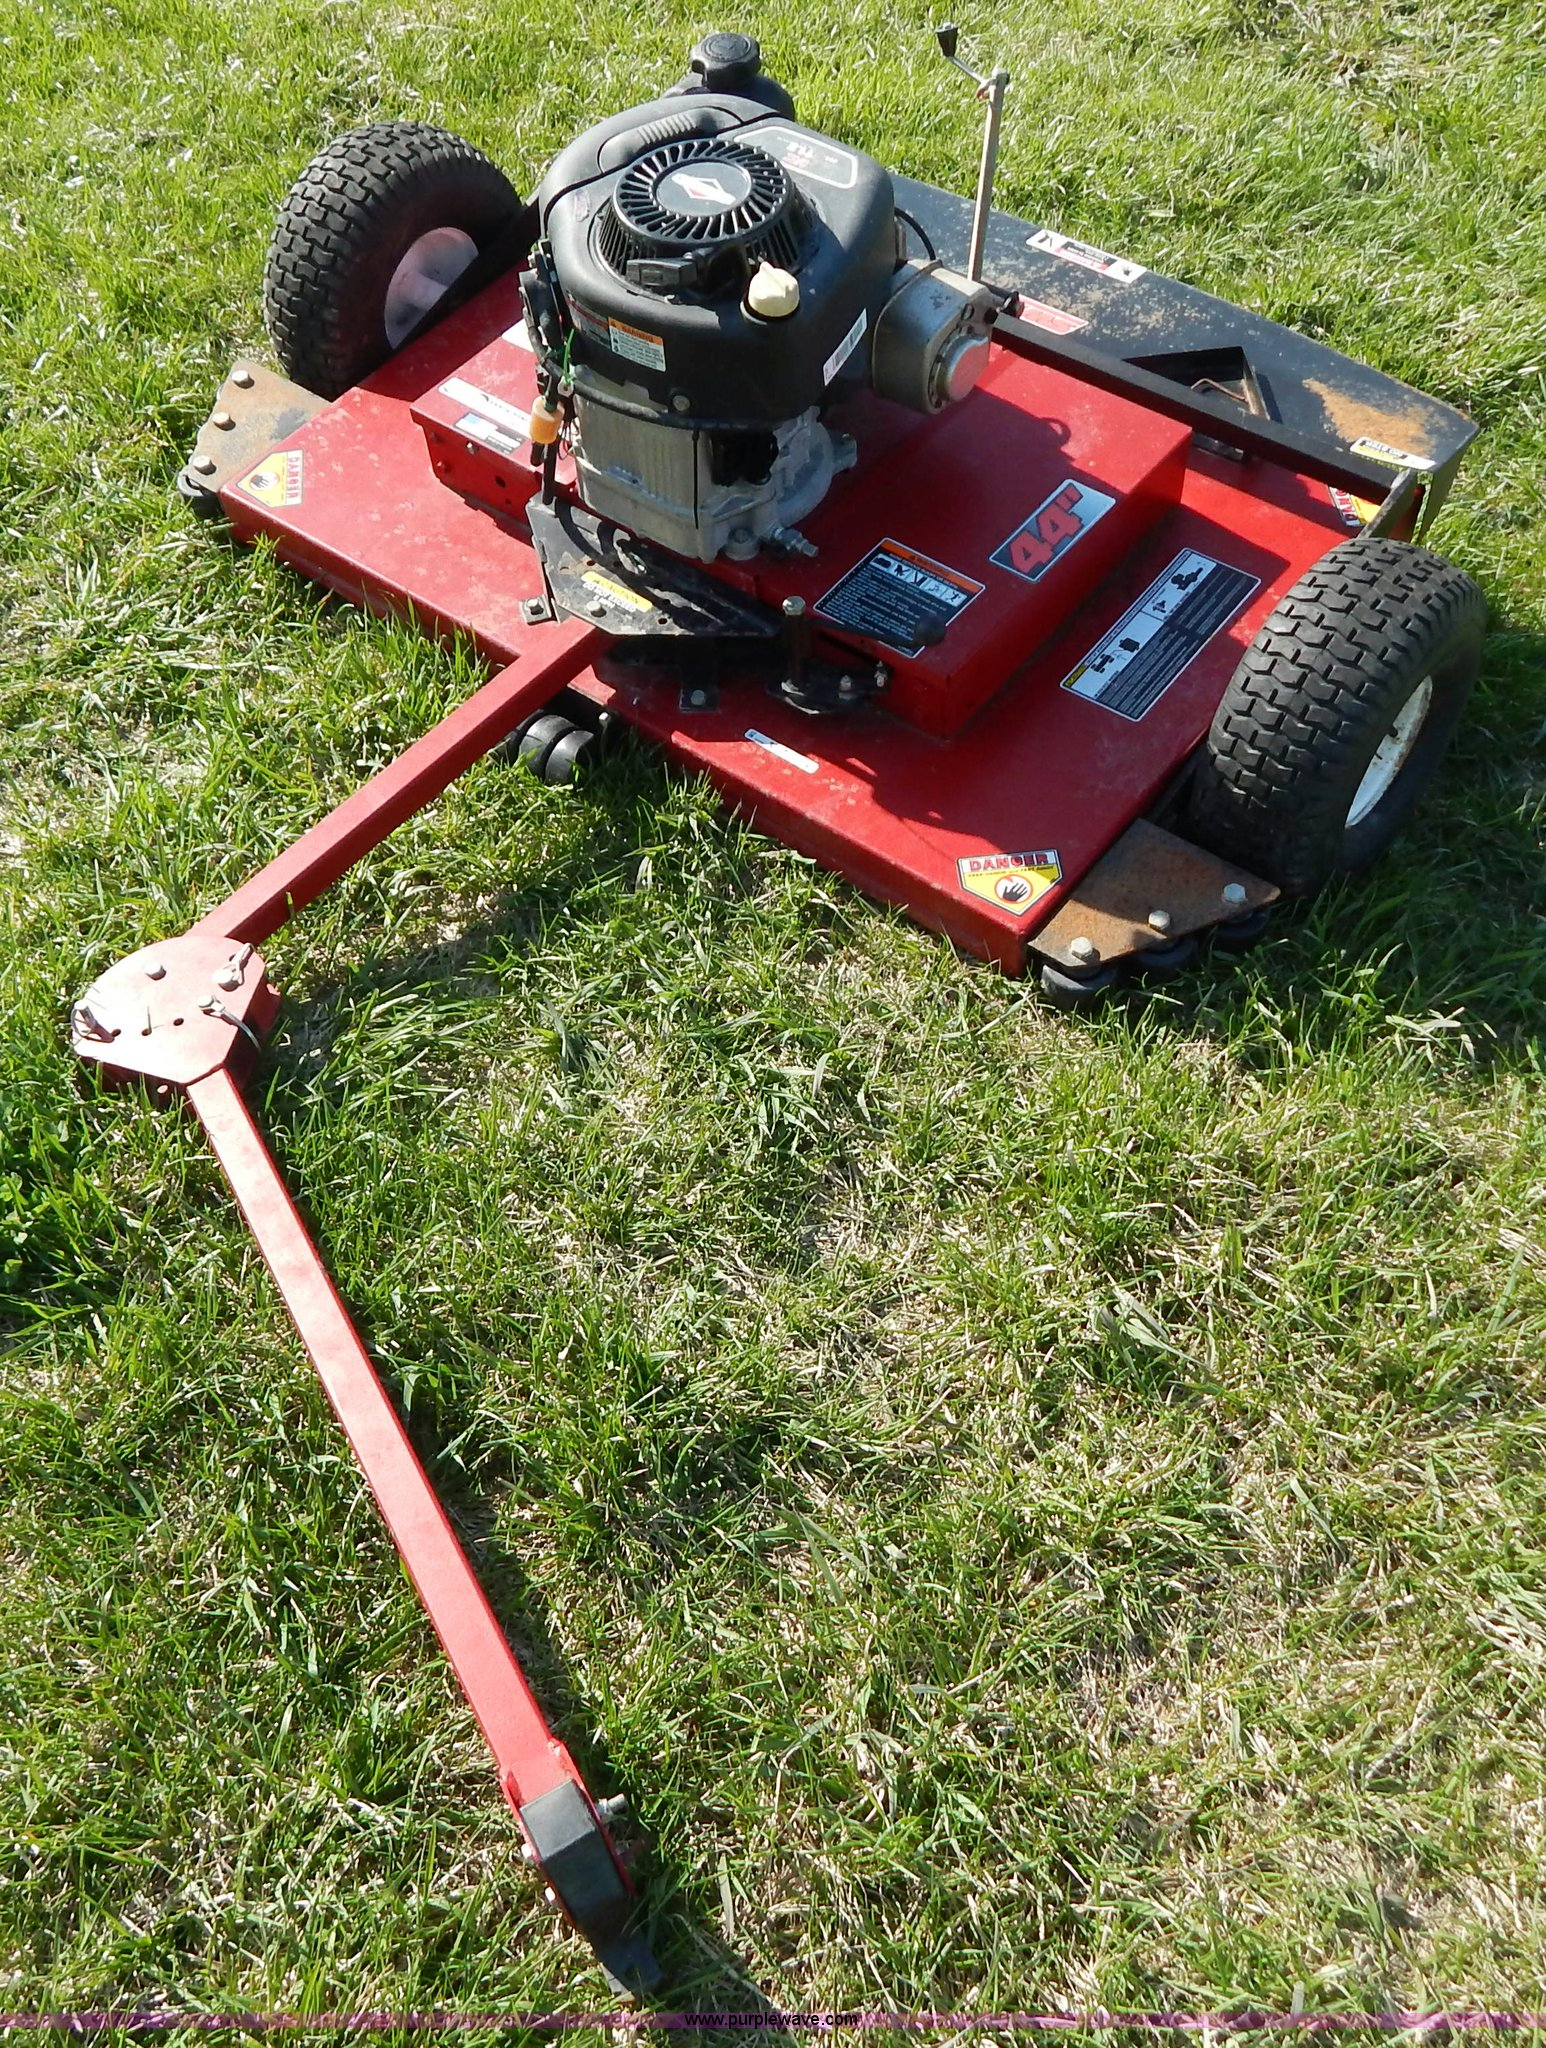 Swisher T11544 pull behind mower | Item Z9483 | SOLD! May 15